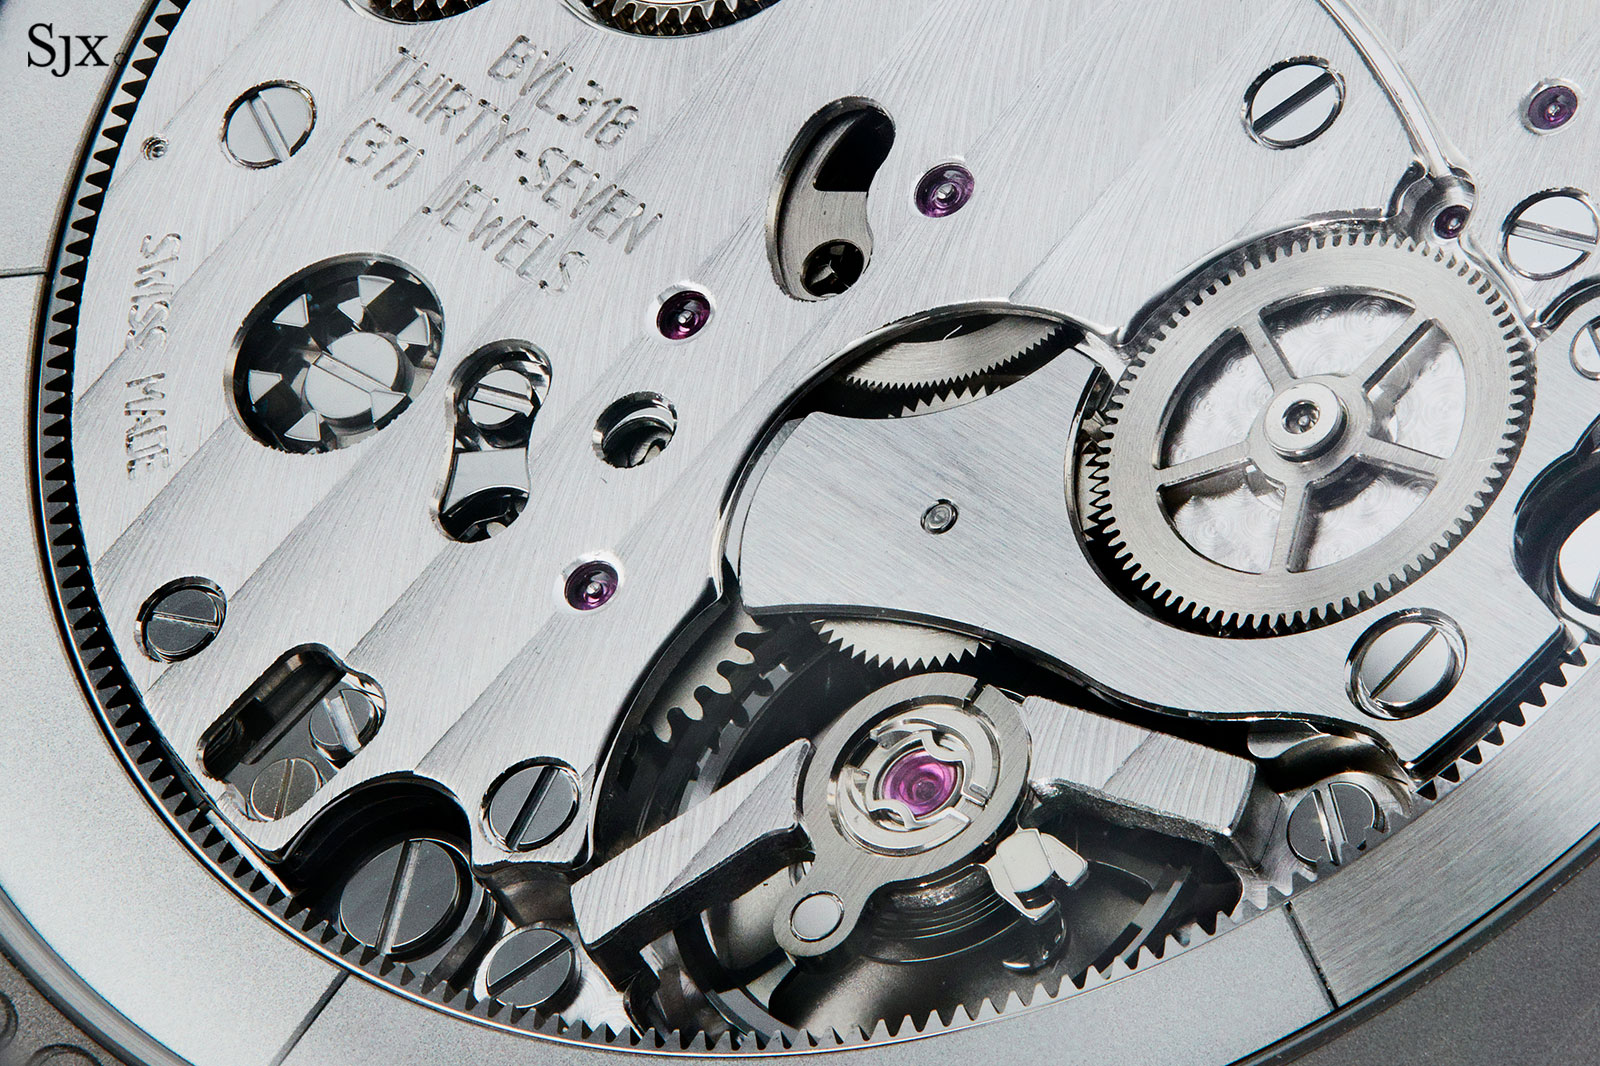 Bulgari Octo Finissimo Chronograph GMT Automatic 6